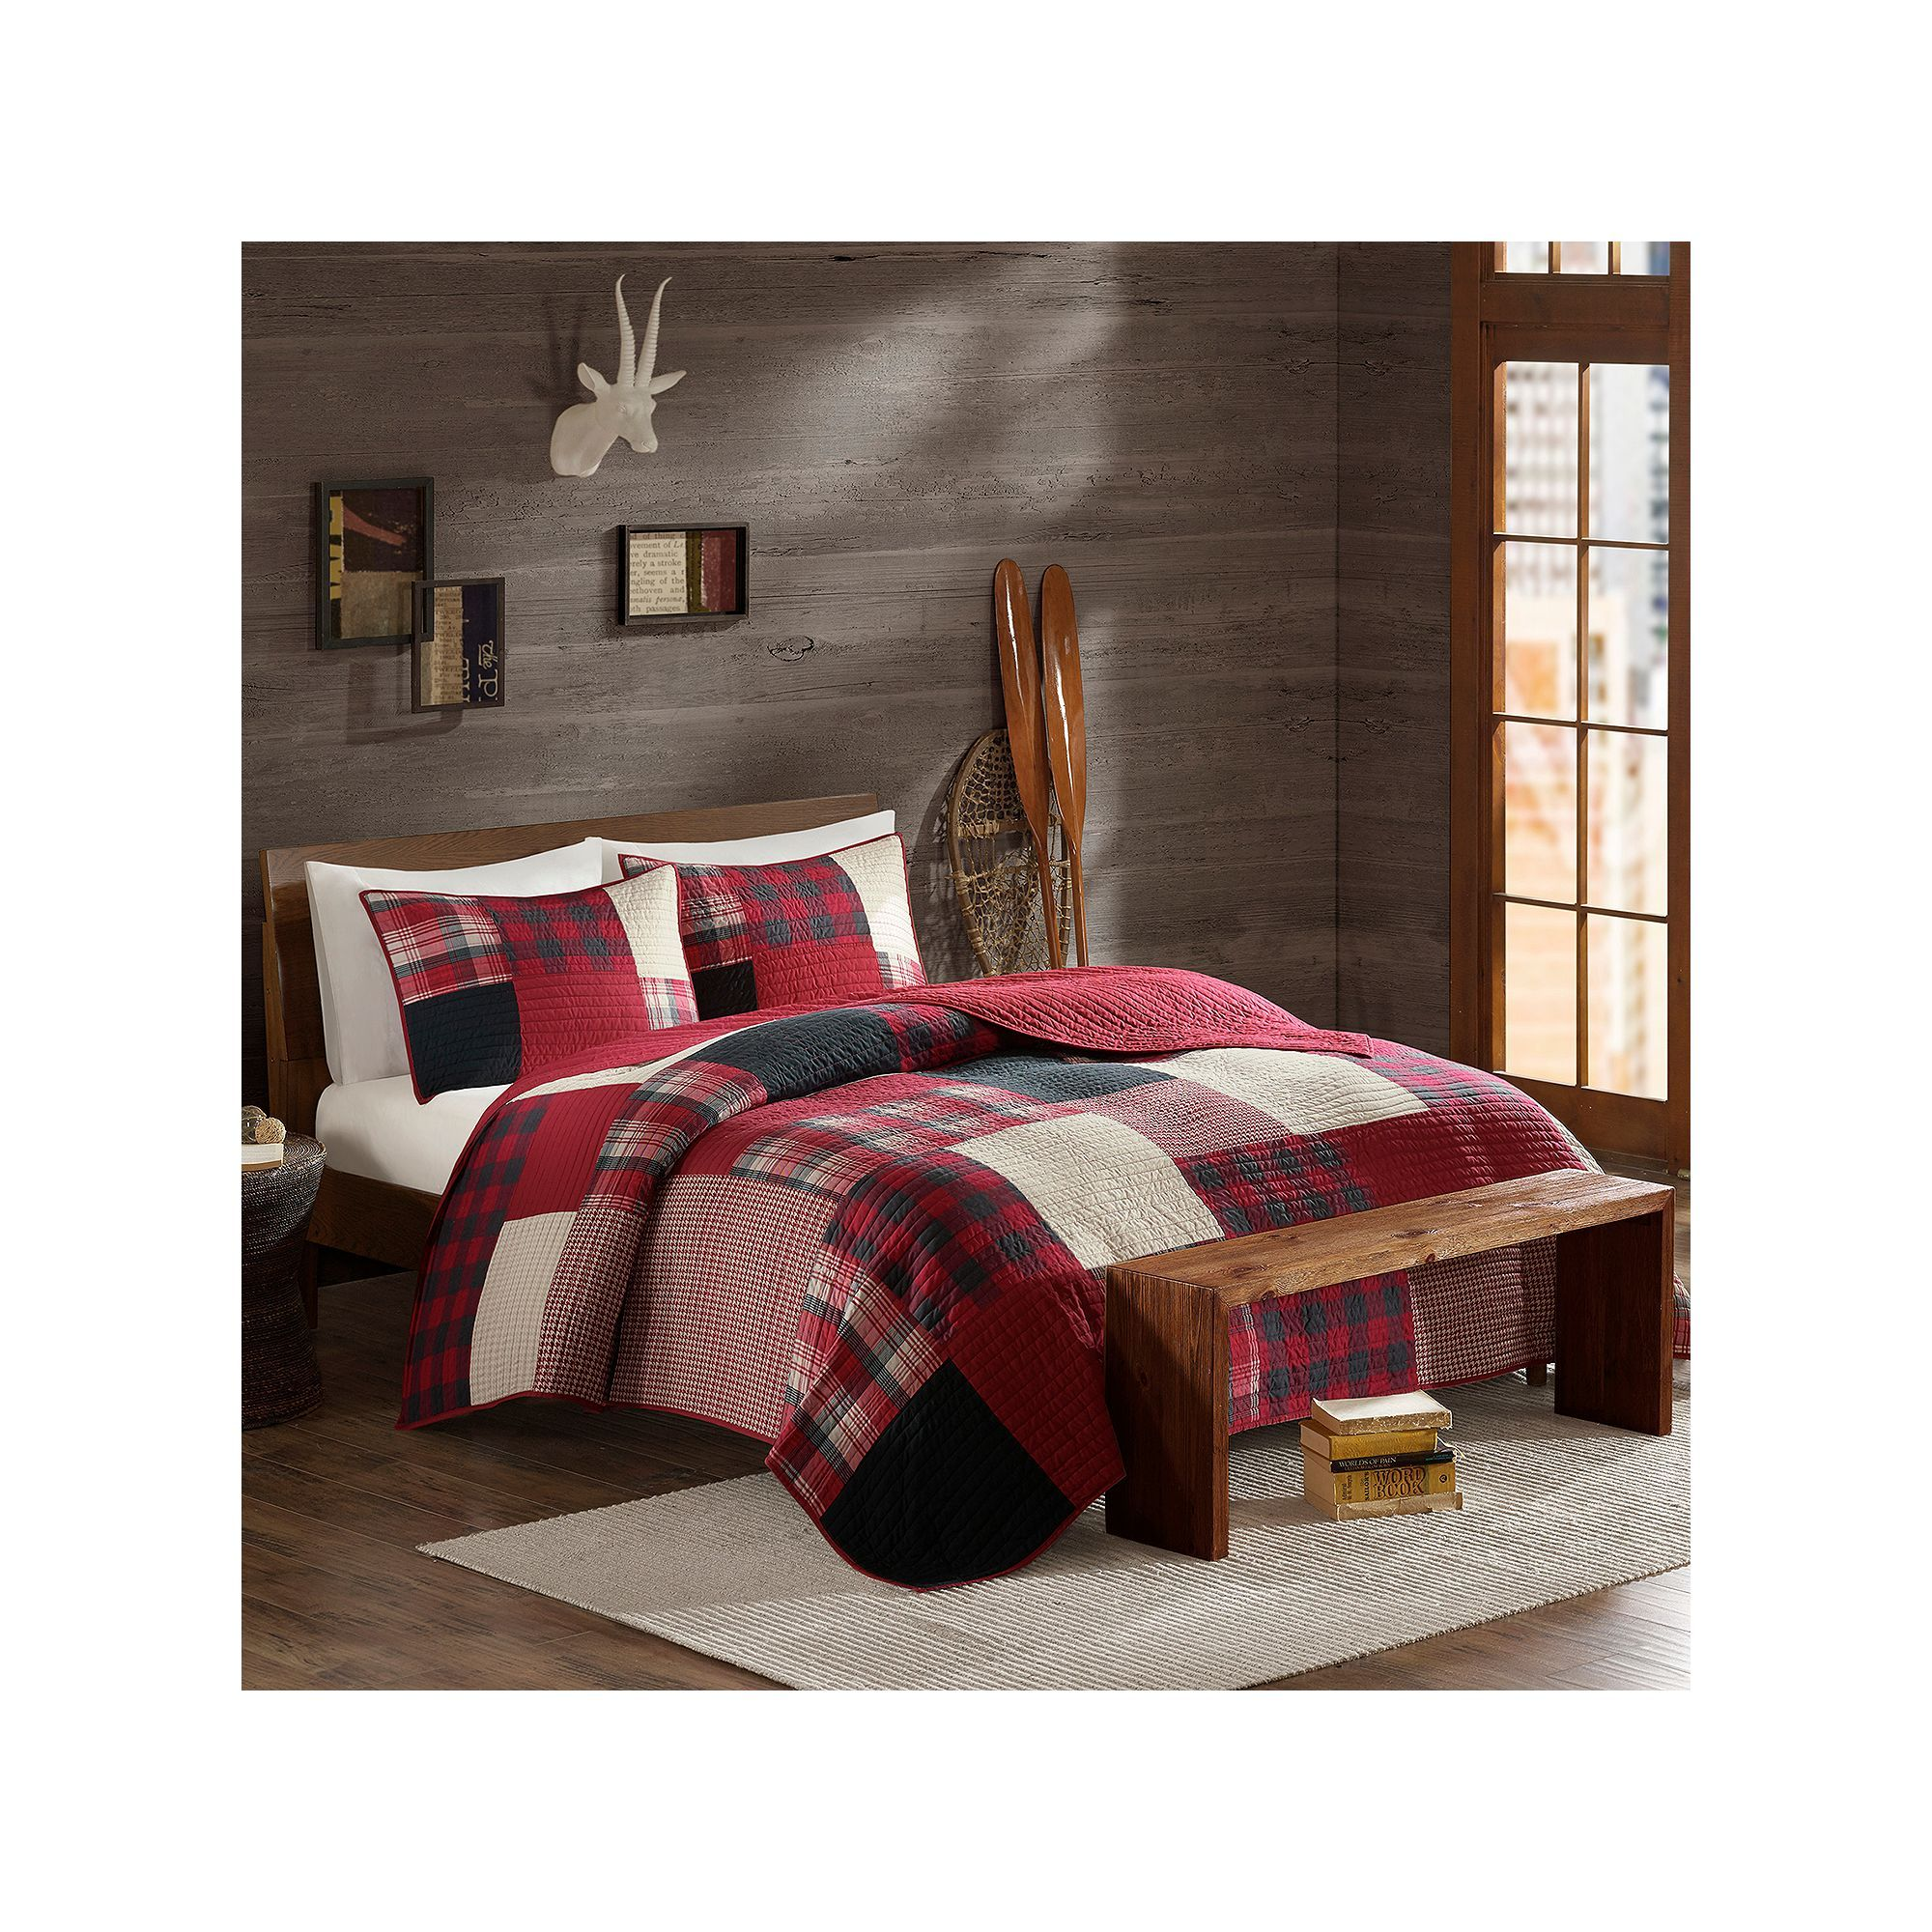 best ralph designs red lauren plaid comfy and cover design bedroom blue bedding for duvet with simple